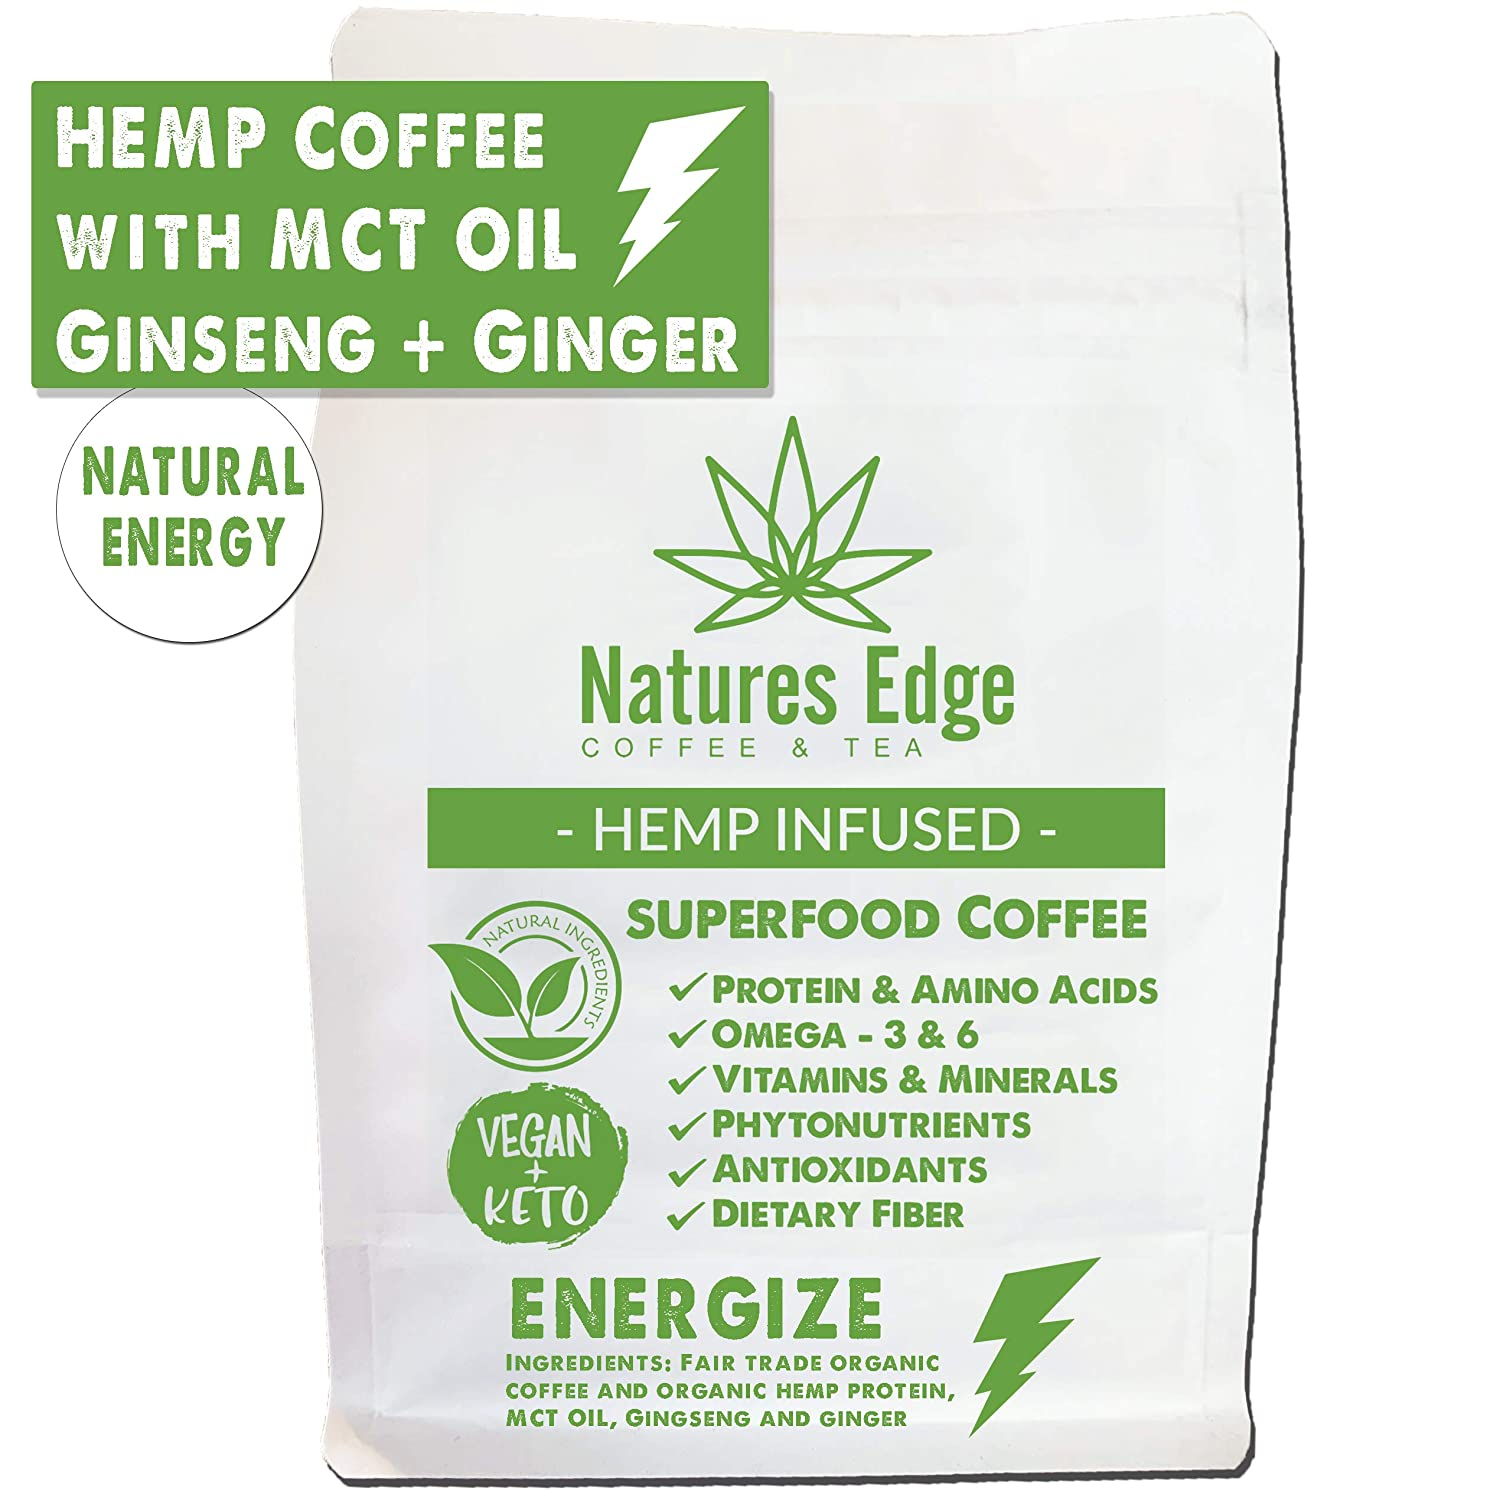 Natures Edge Energize Blend - Medium Roast Hemp Coffee Ground with MCT Oil, Ginseng, Ginger, Antioxidants, Minerals, Fiber and Heart-Healthy Unsaturated Fats - 12oz